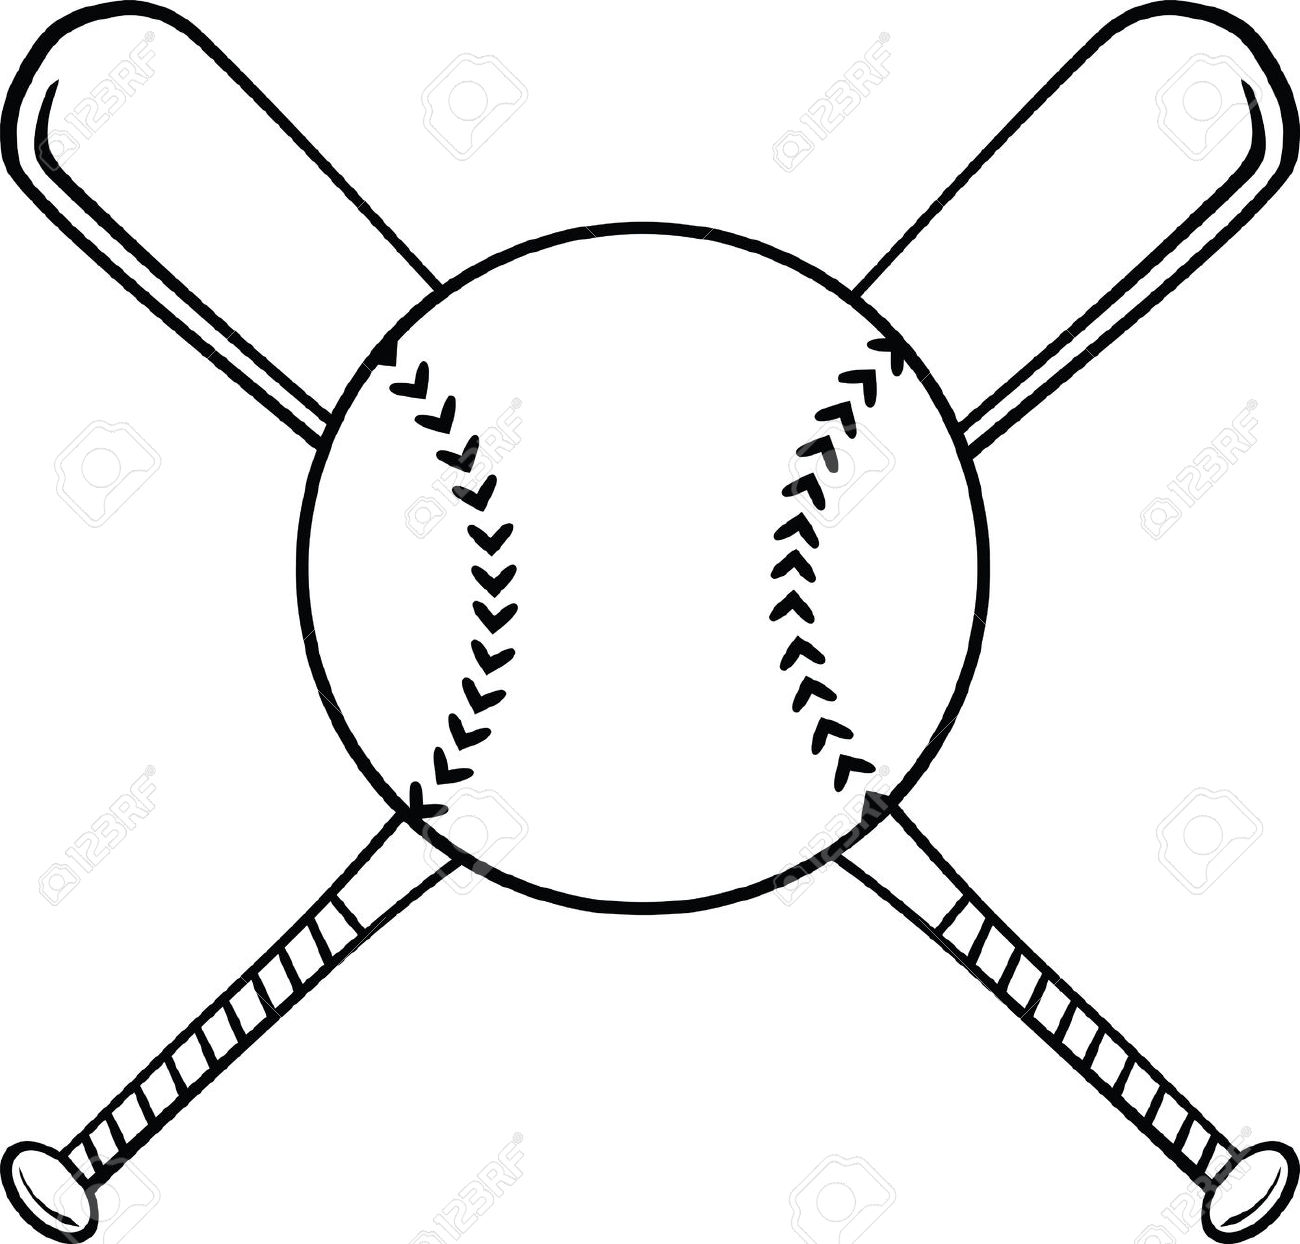 Pics Photos - Baseball Bat Clipart Black And White Field Dimensions